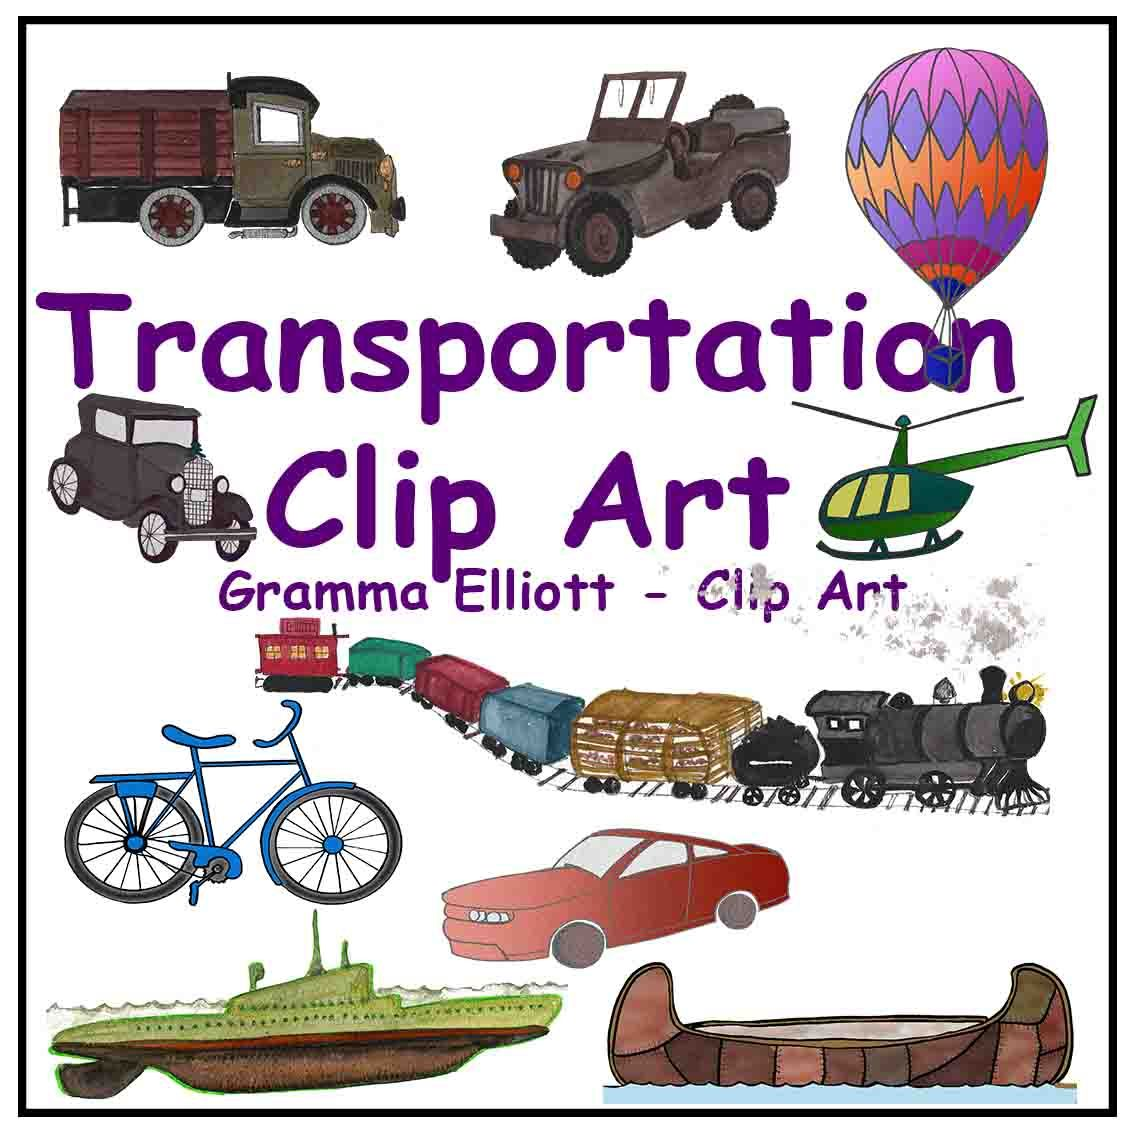 Transportation clipart bycicle. Clip art train boat